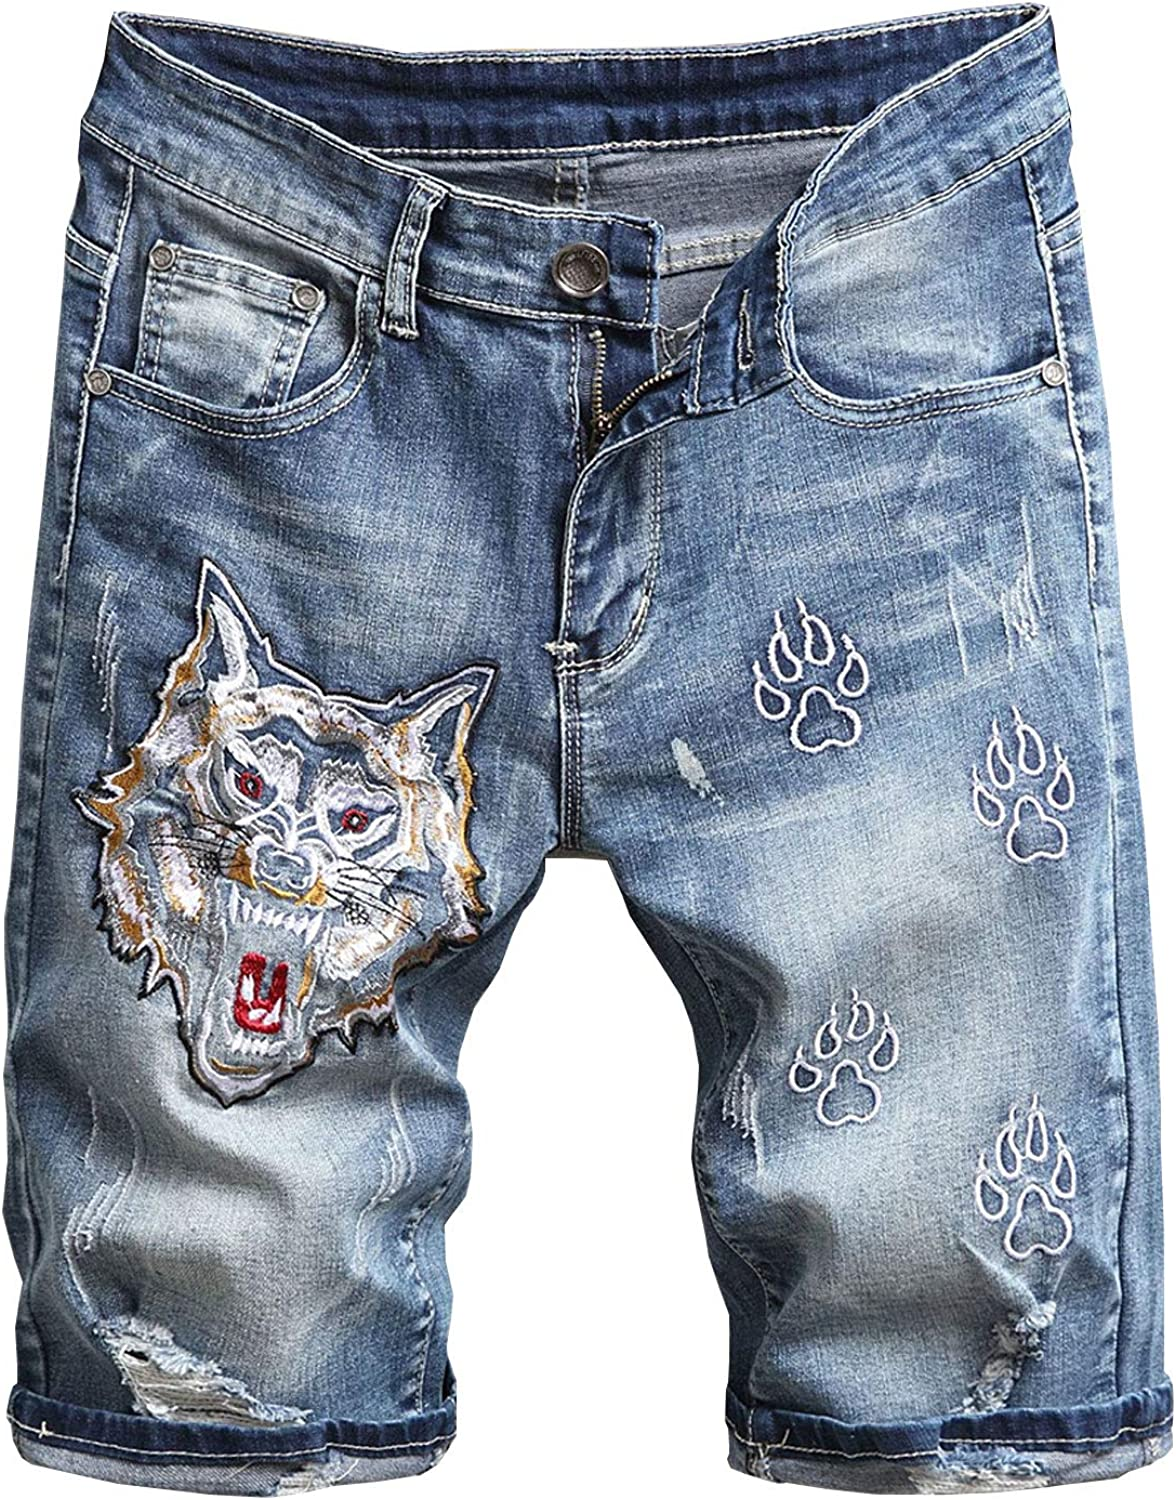 Aeneontrue Men's Denim Shorts Ripped Embroidered Casual Slim Jeans Short Pants for Summer Size28-40